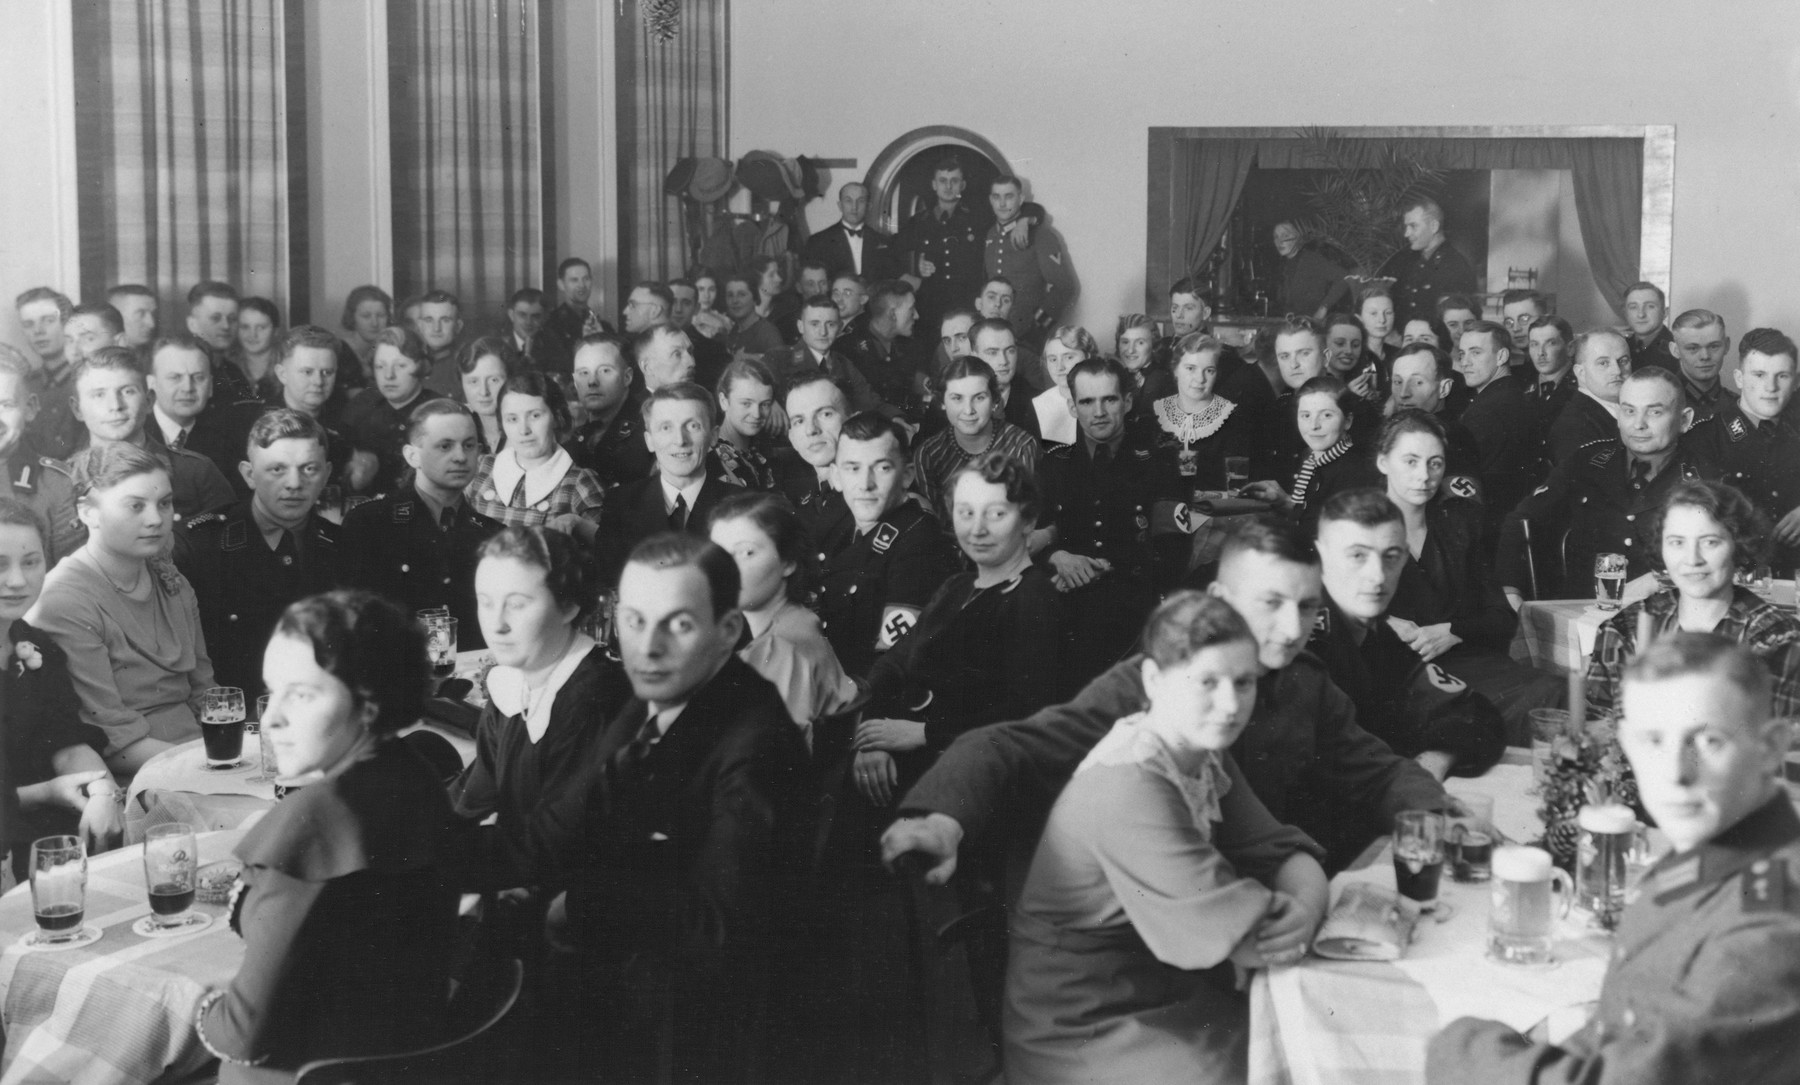 A social gathering at the Hitler Jugend Heim (Hitler Youth home) in Poessneck.